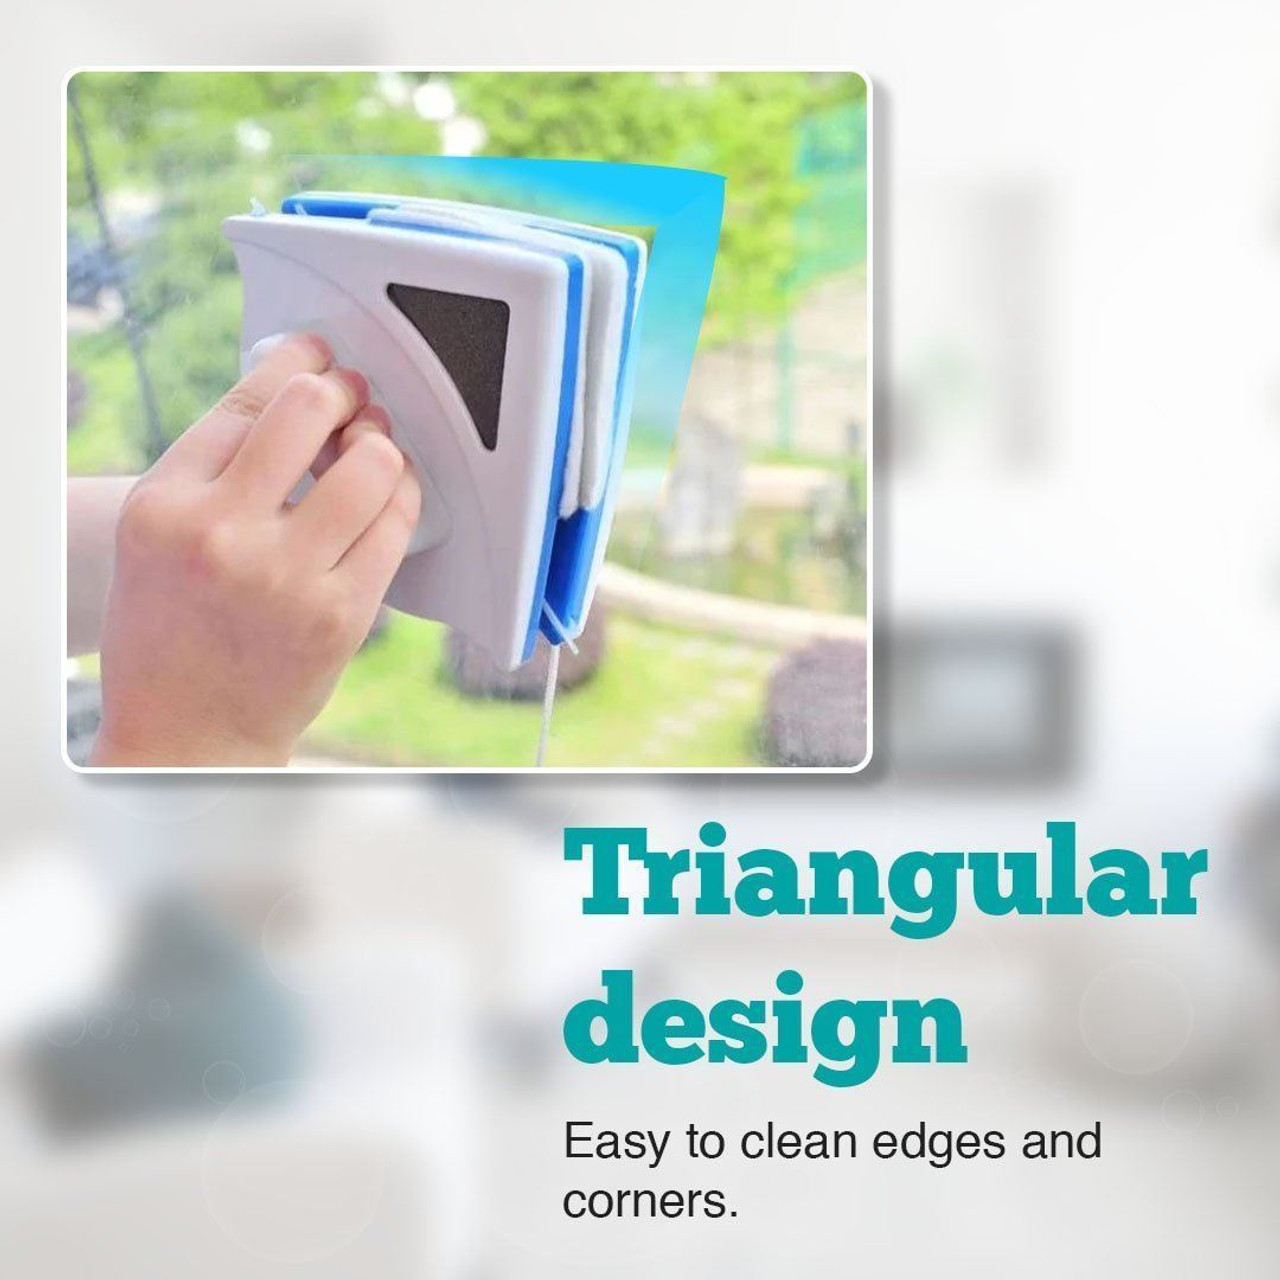 Domestic-Use Double-Sided Window Washer